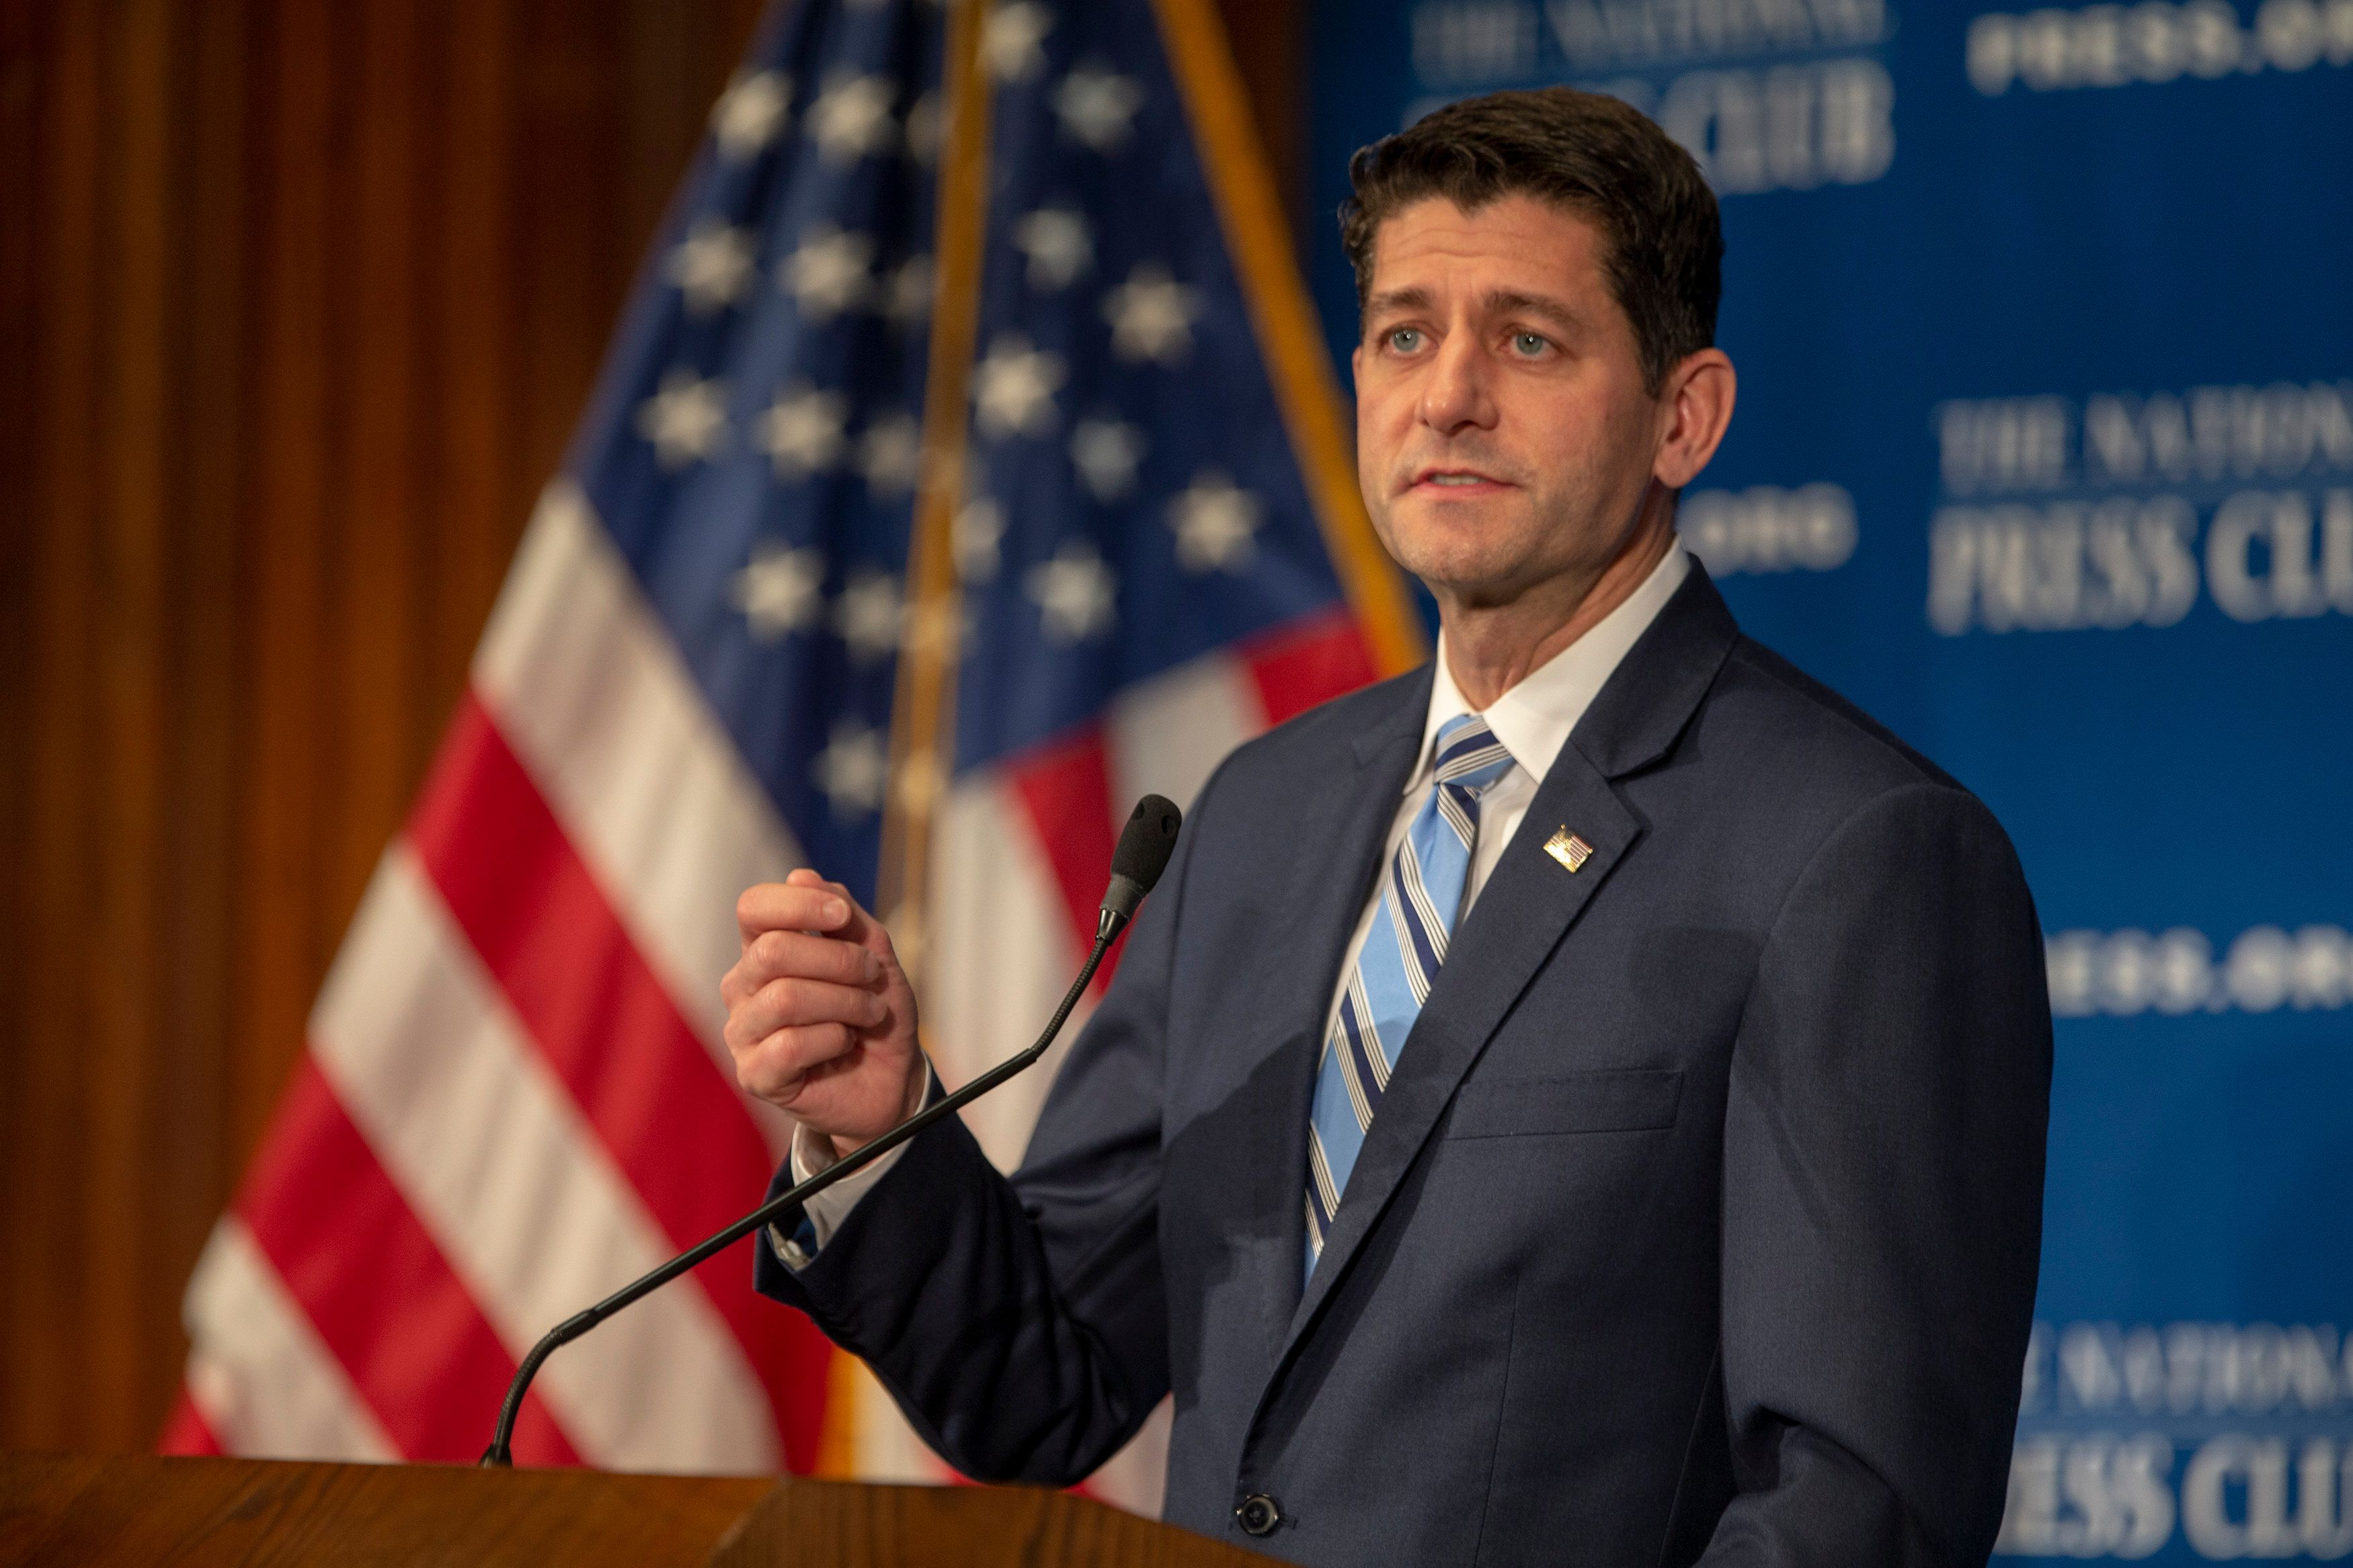 WASHINGTON, DC - OCTOBER 08: Speaker of the House Paul Ryan (R-WI) speaks at the National Press Club Newsmaker event on October 8, 2018 in Washington, DC. Ryan delivered remarks on 'how Americans are 'Better Off Now,' highlighting the clear contrast between Republican policies and the Democrats' vision for America.' (Photo by Tasos Katopodis/Getty Images)